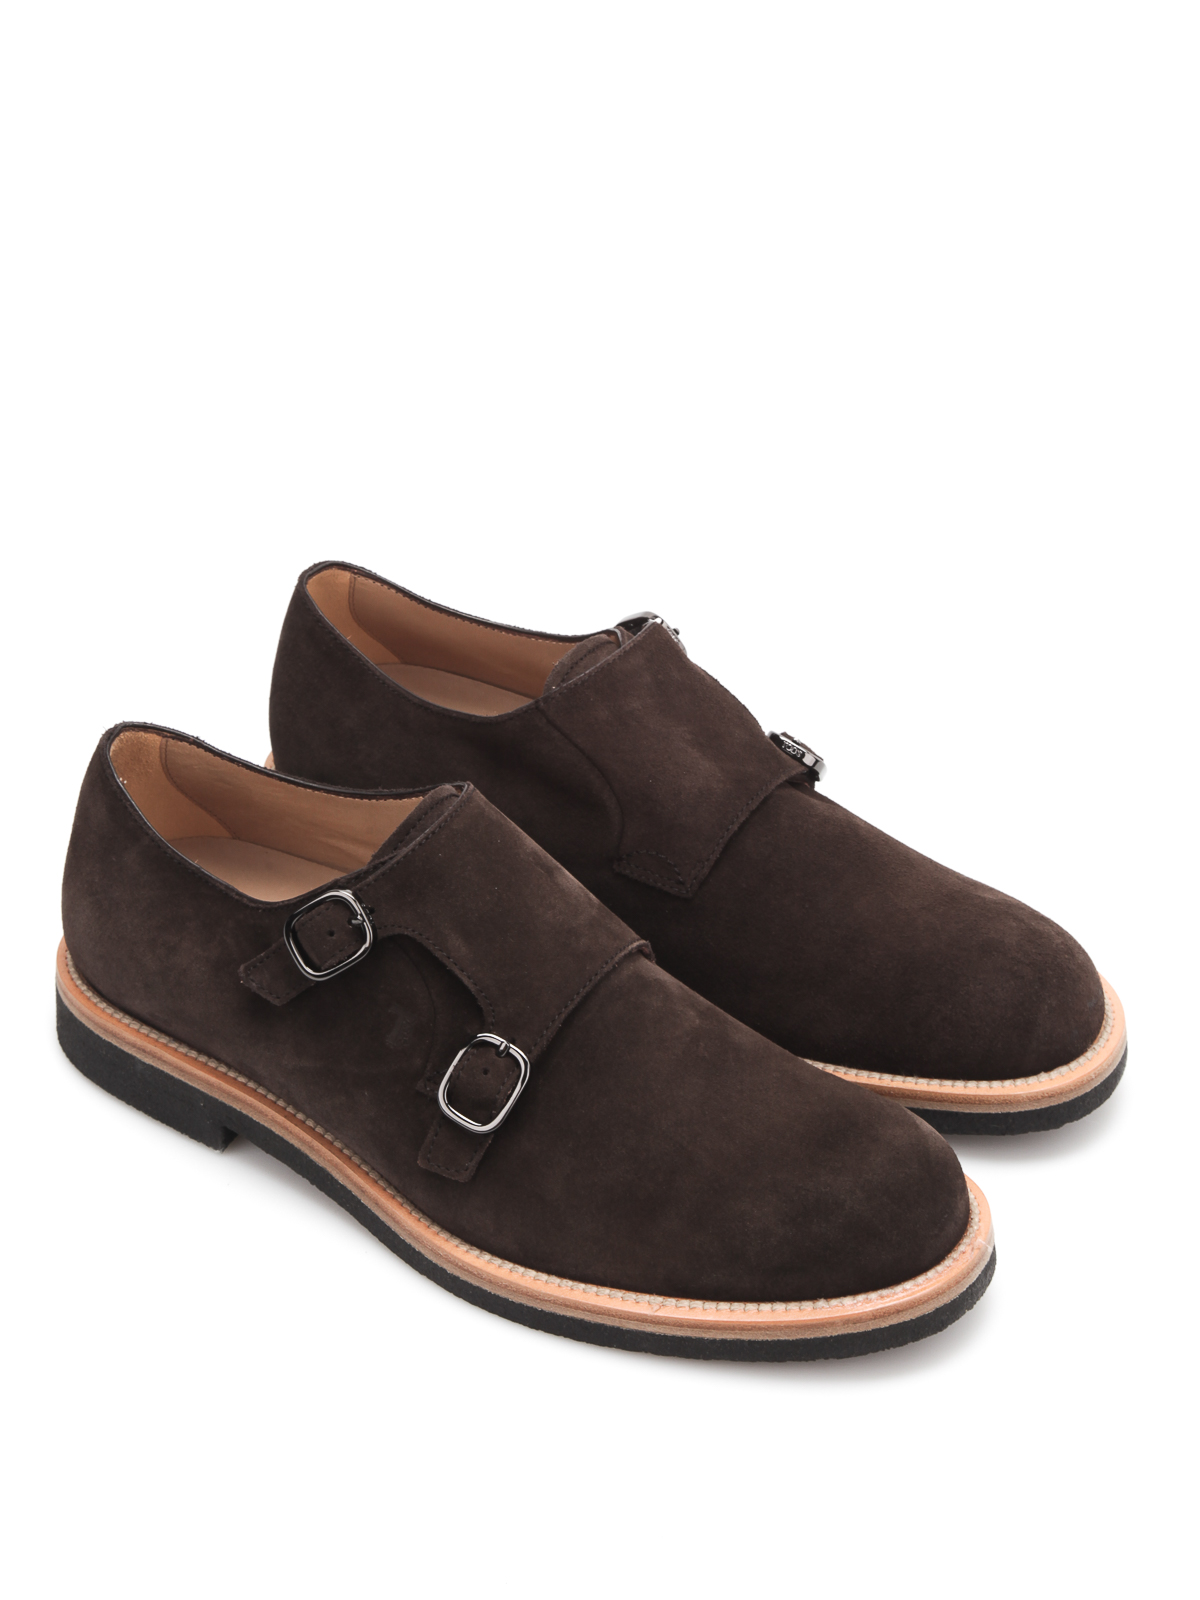 Monk Strap Shoes in Suede Tod's iRbvdQ